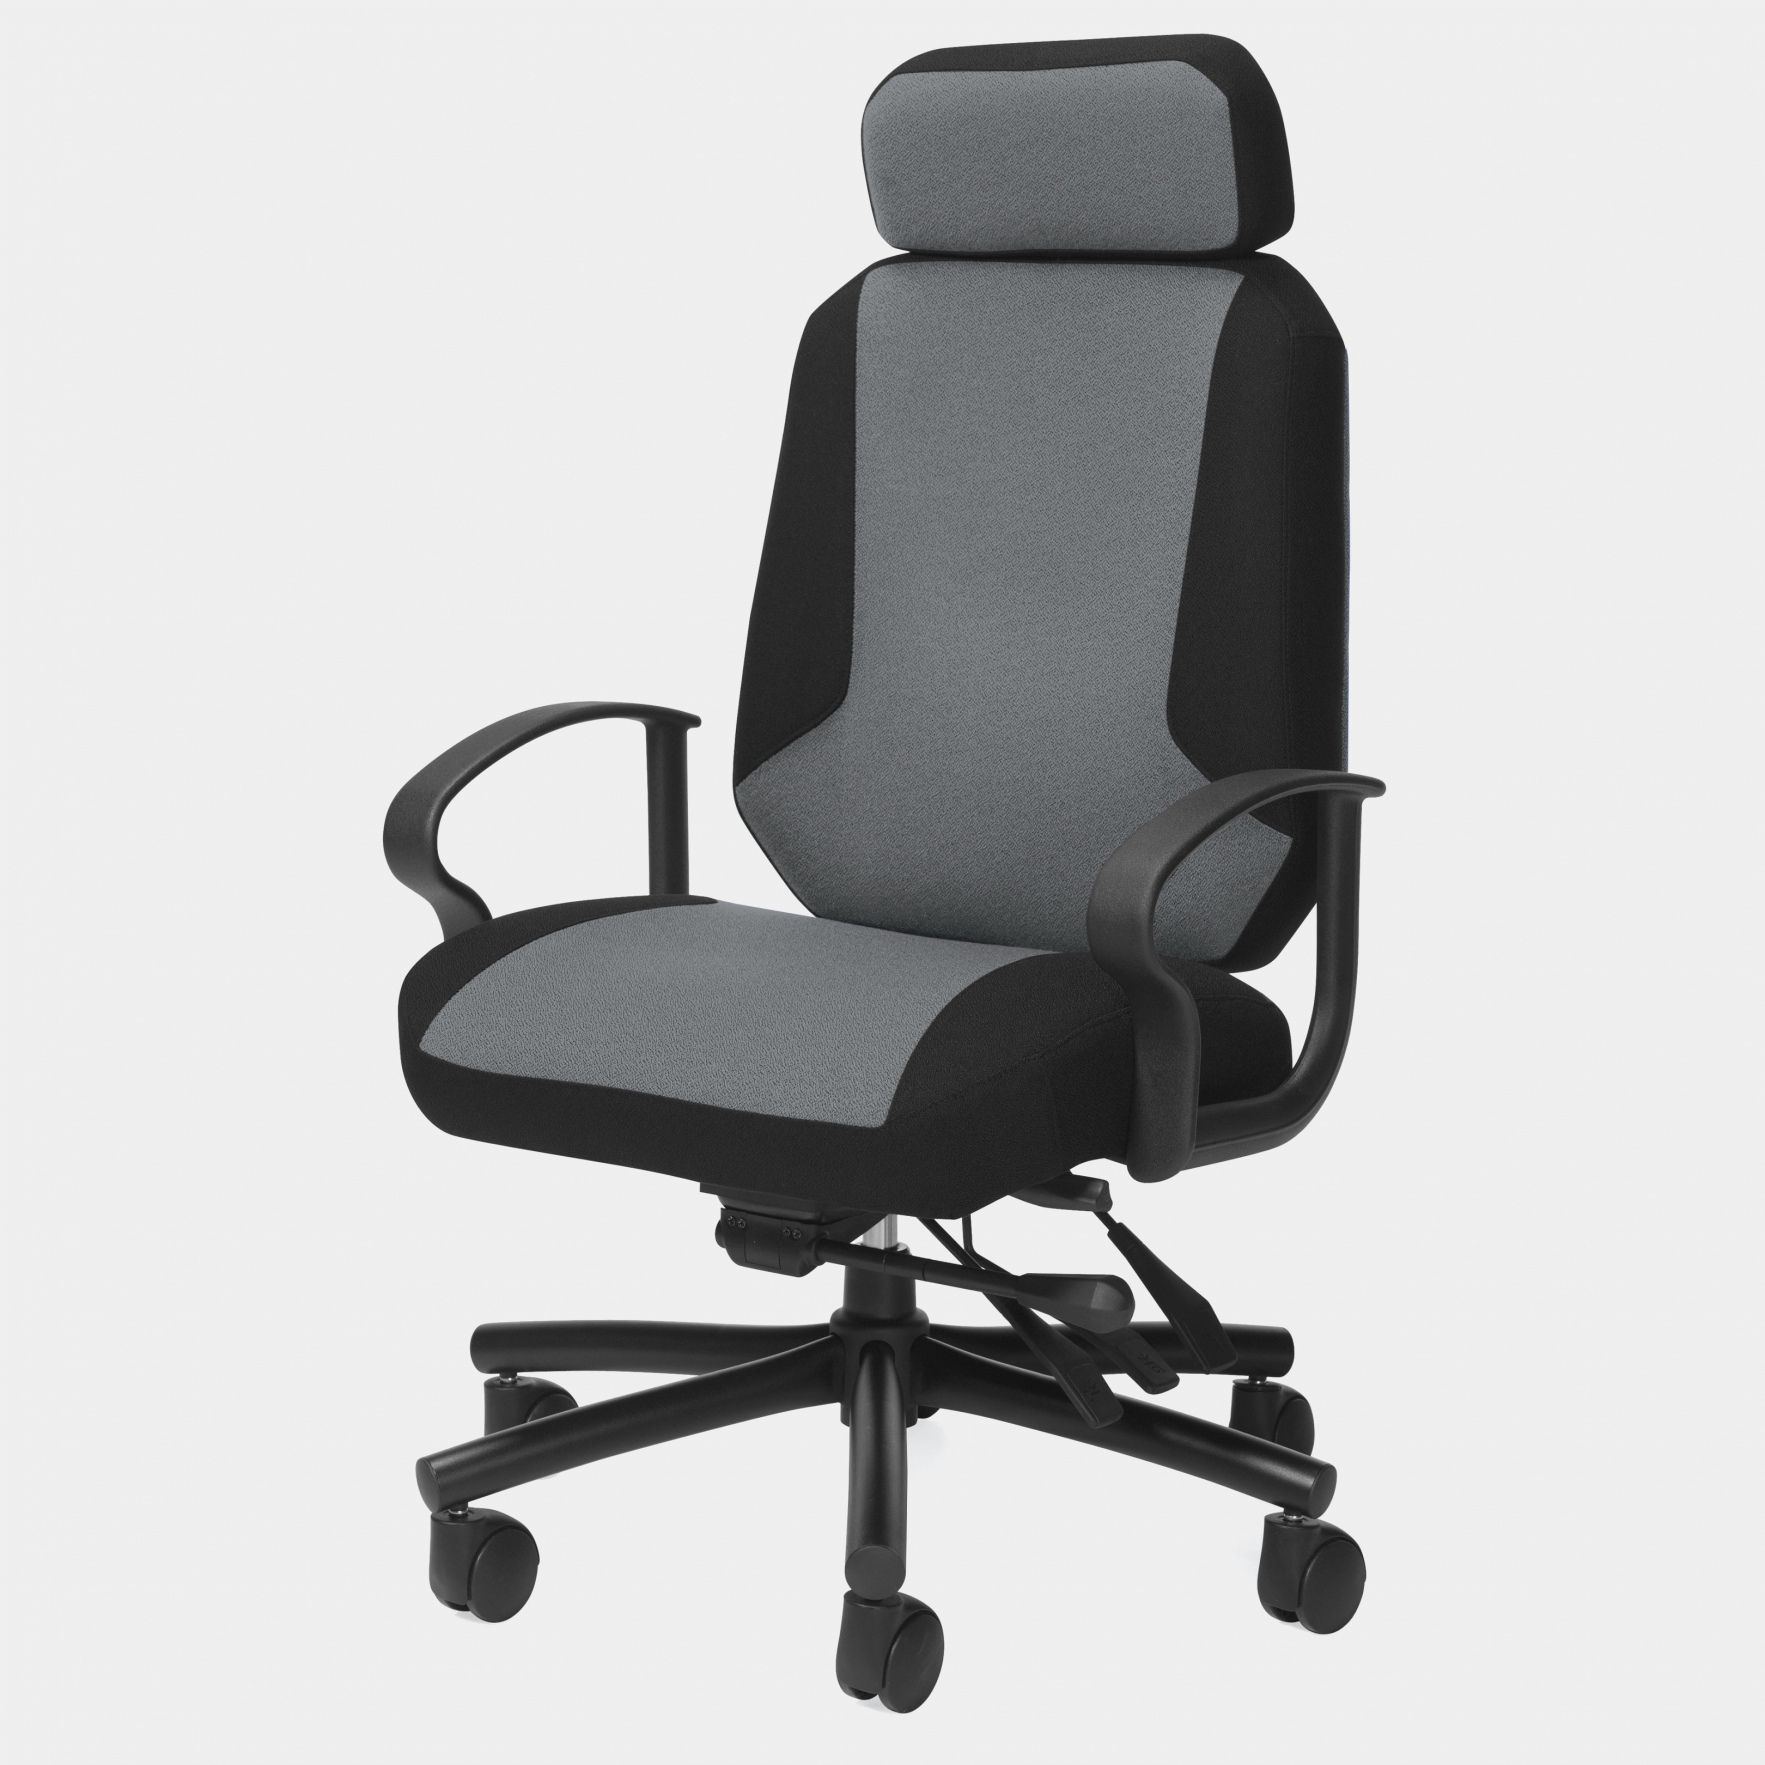 55 500 Lb Office Chair Best Bedroom Furniture Check More At Http Steelbookreview 2018 Way To Paint Pinterest